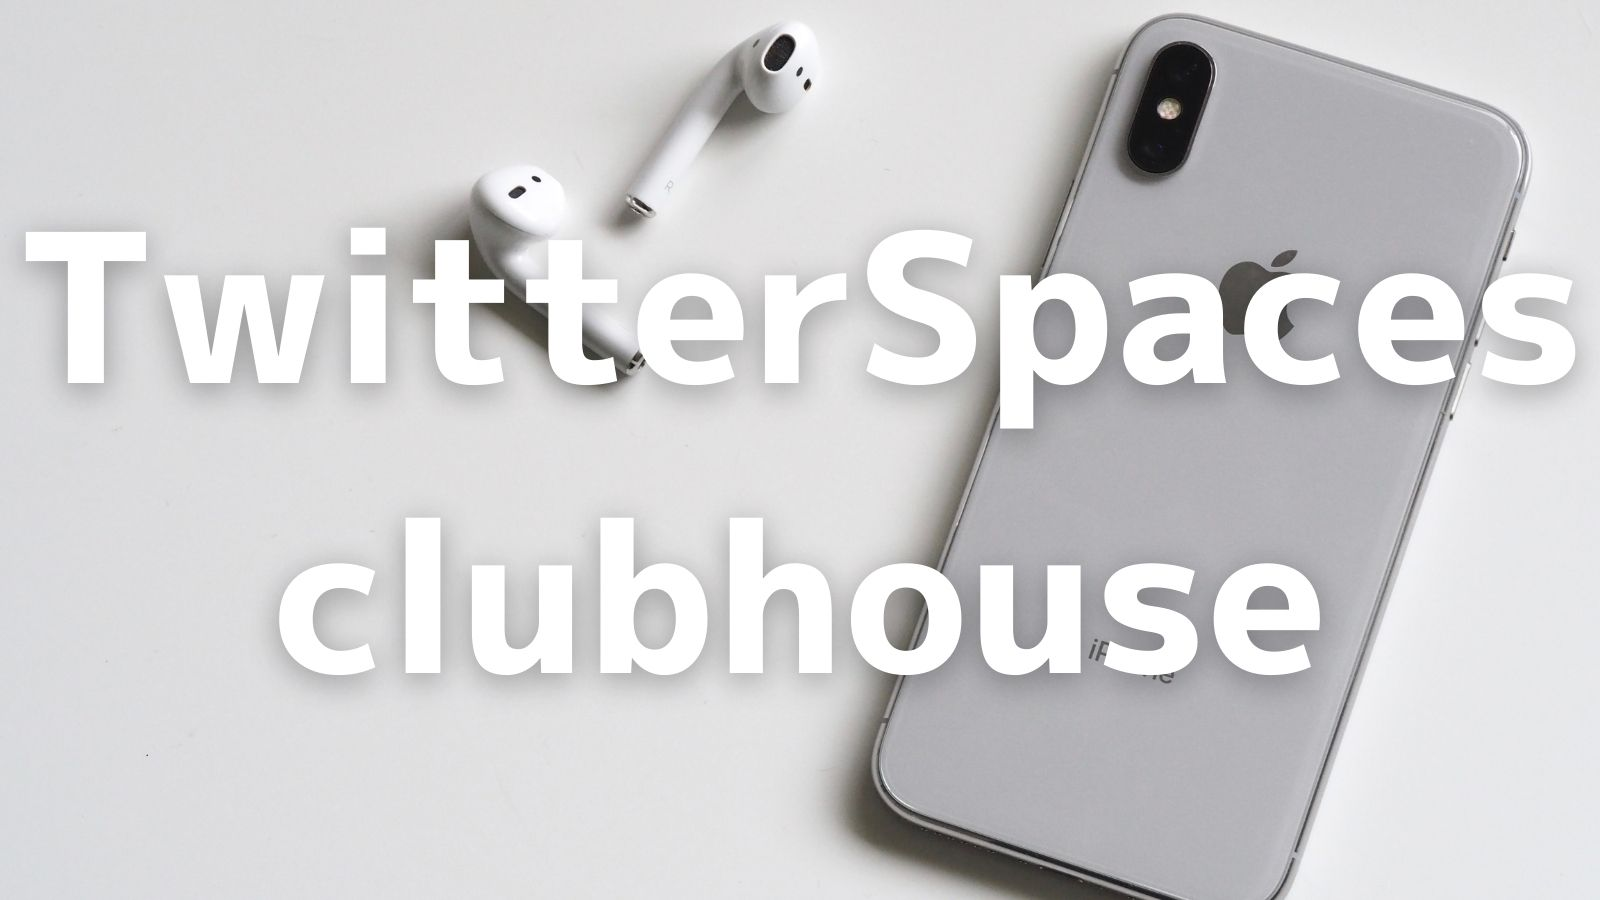 TwitterSpaces_clubhouse_000